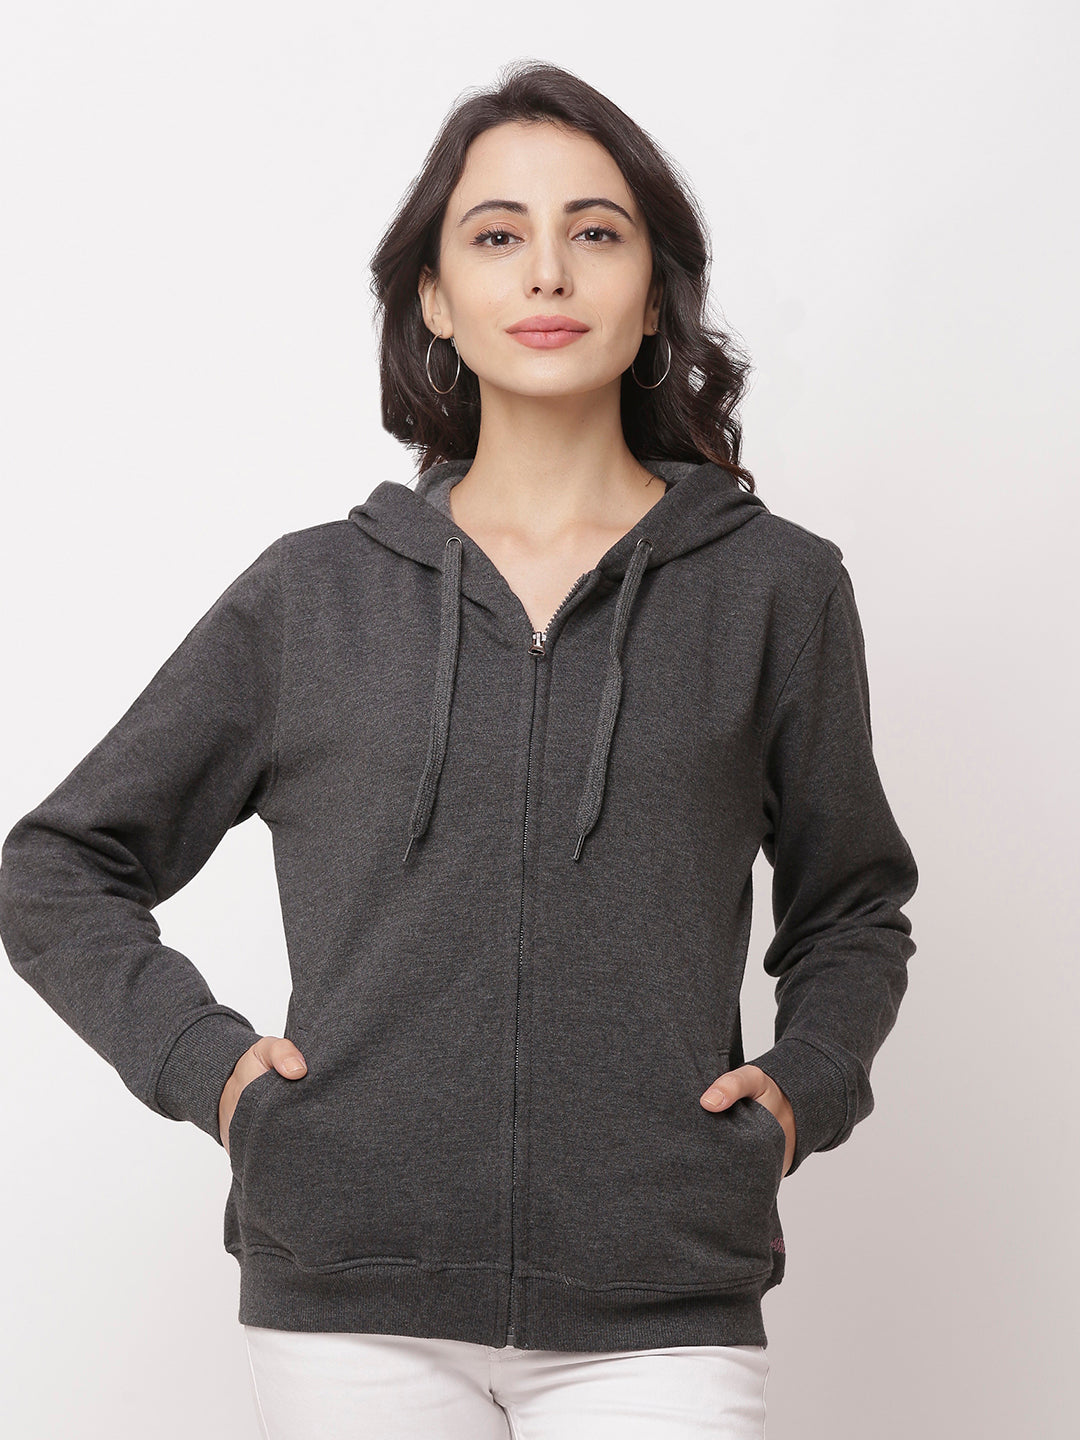 Globus Charcoal Mel Solid Jacket-1